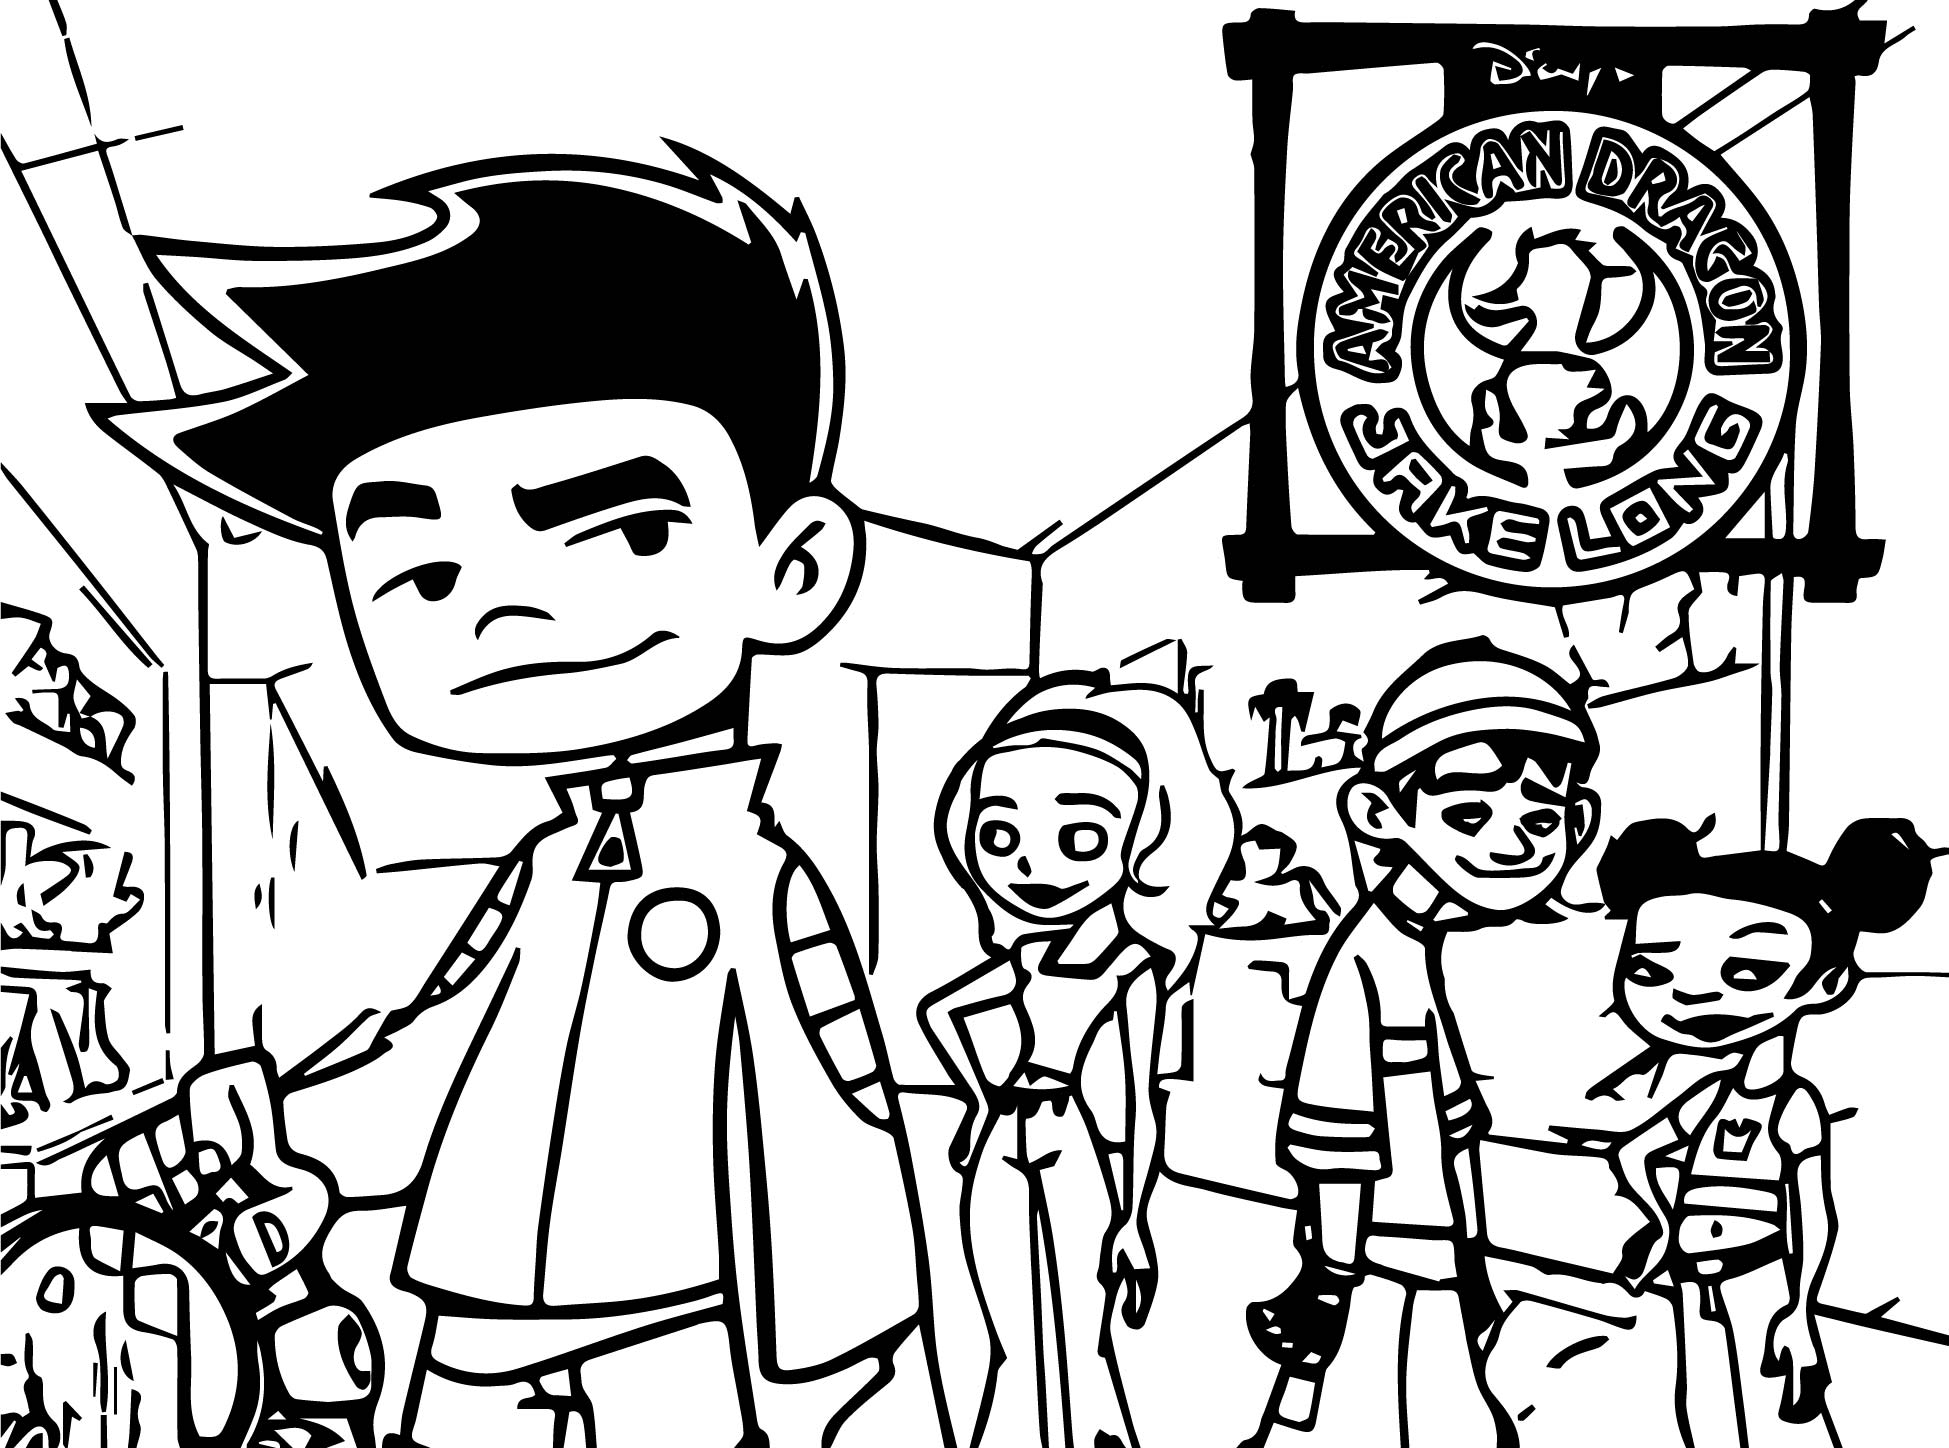 American Dragon Jake Long All Coloring Page